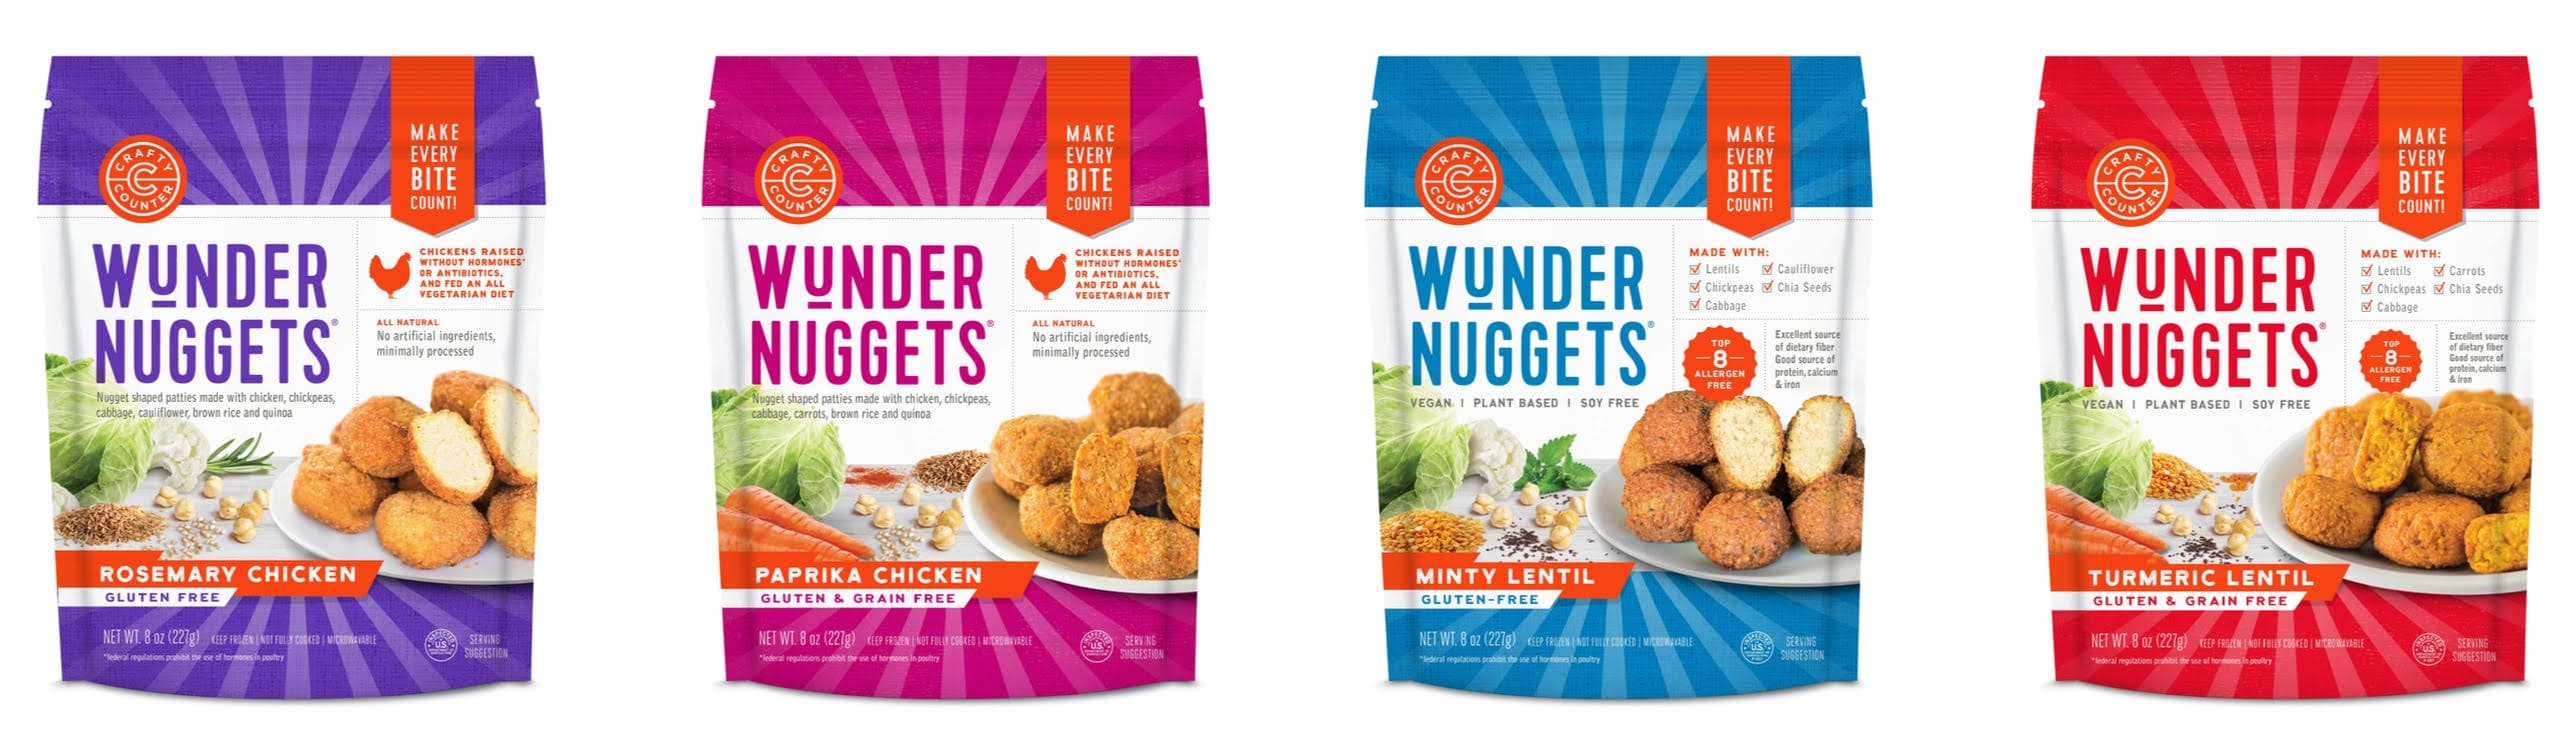 Crafty Counter Announces Two New Wundernuggets Flavors, New Packaging